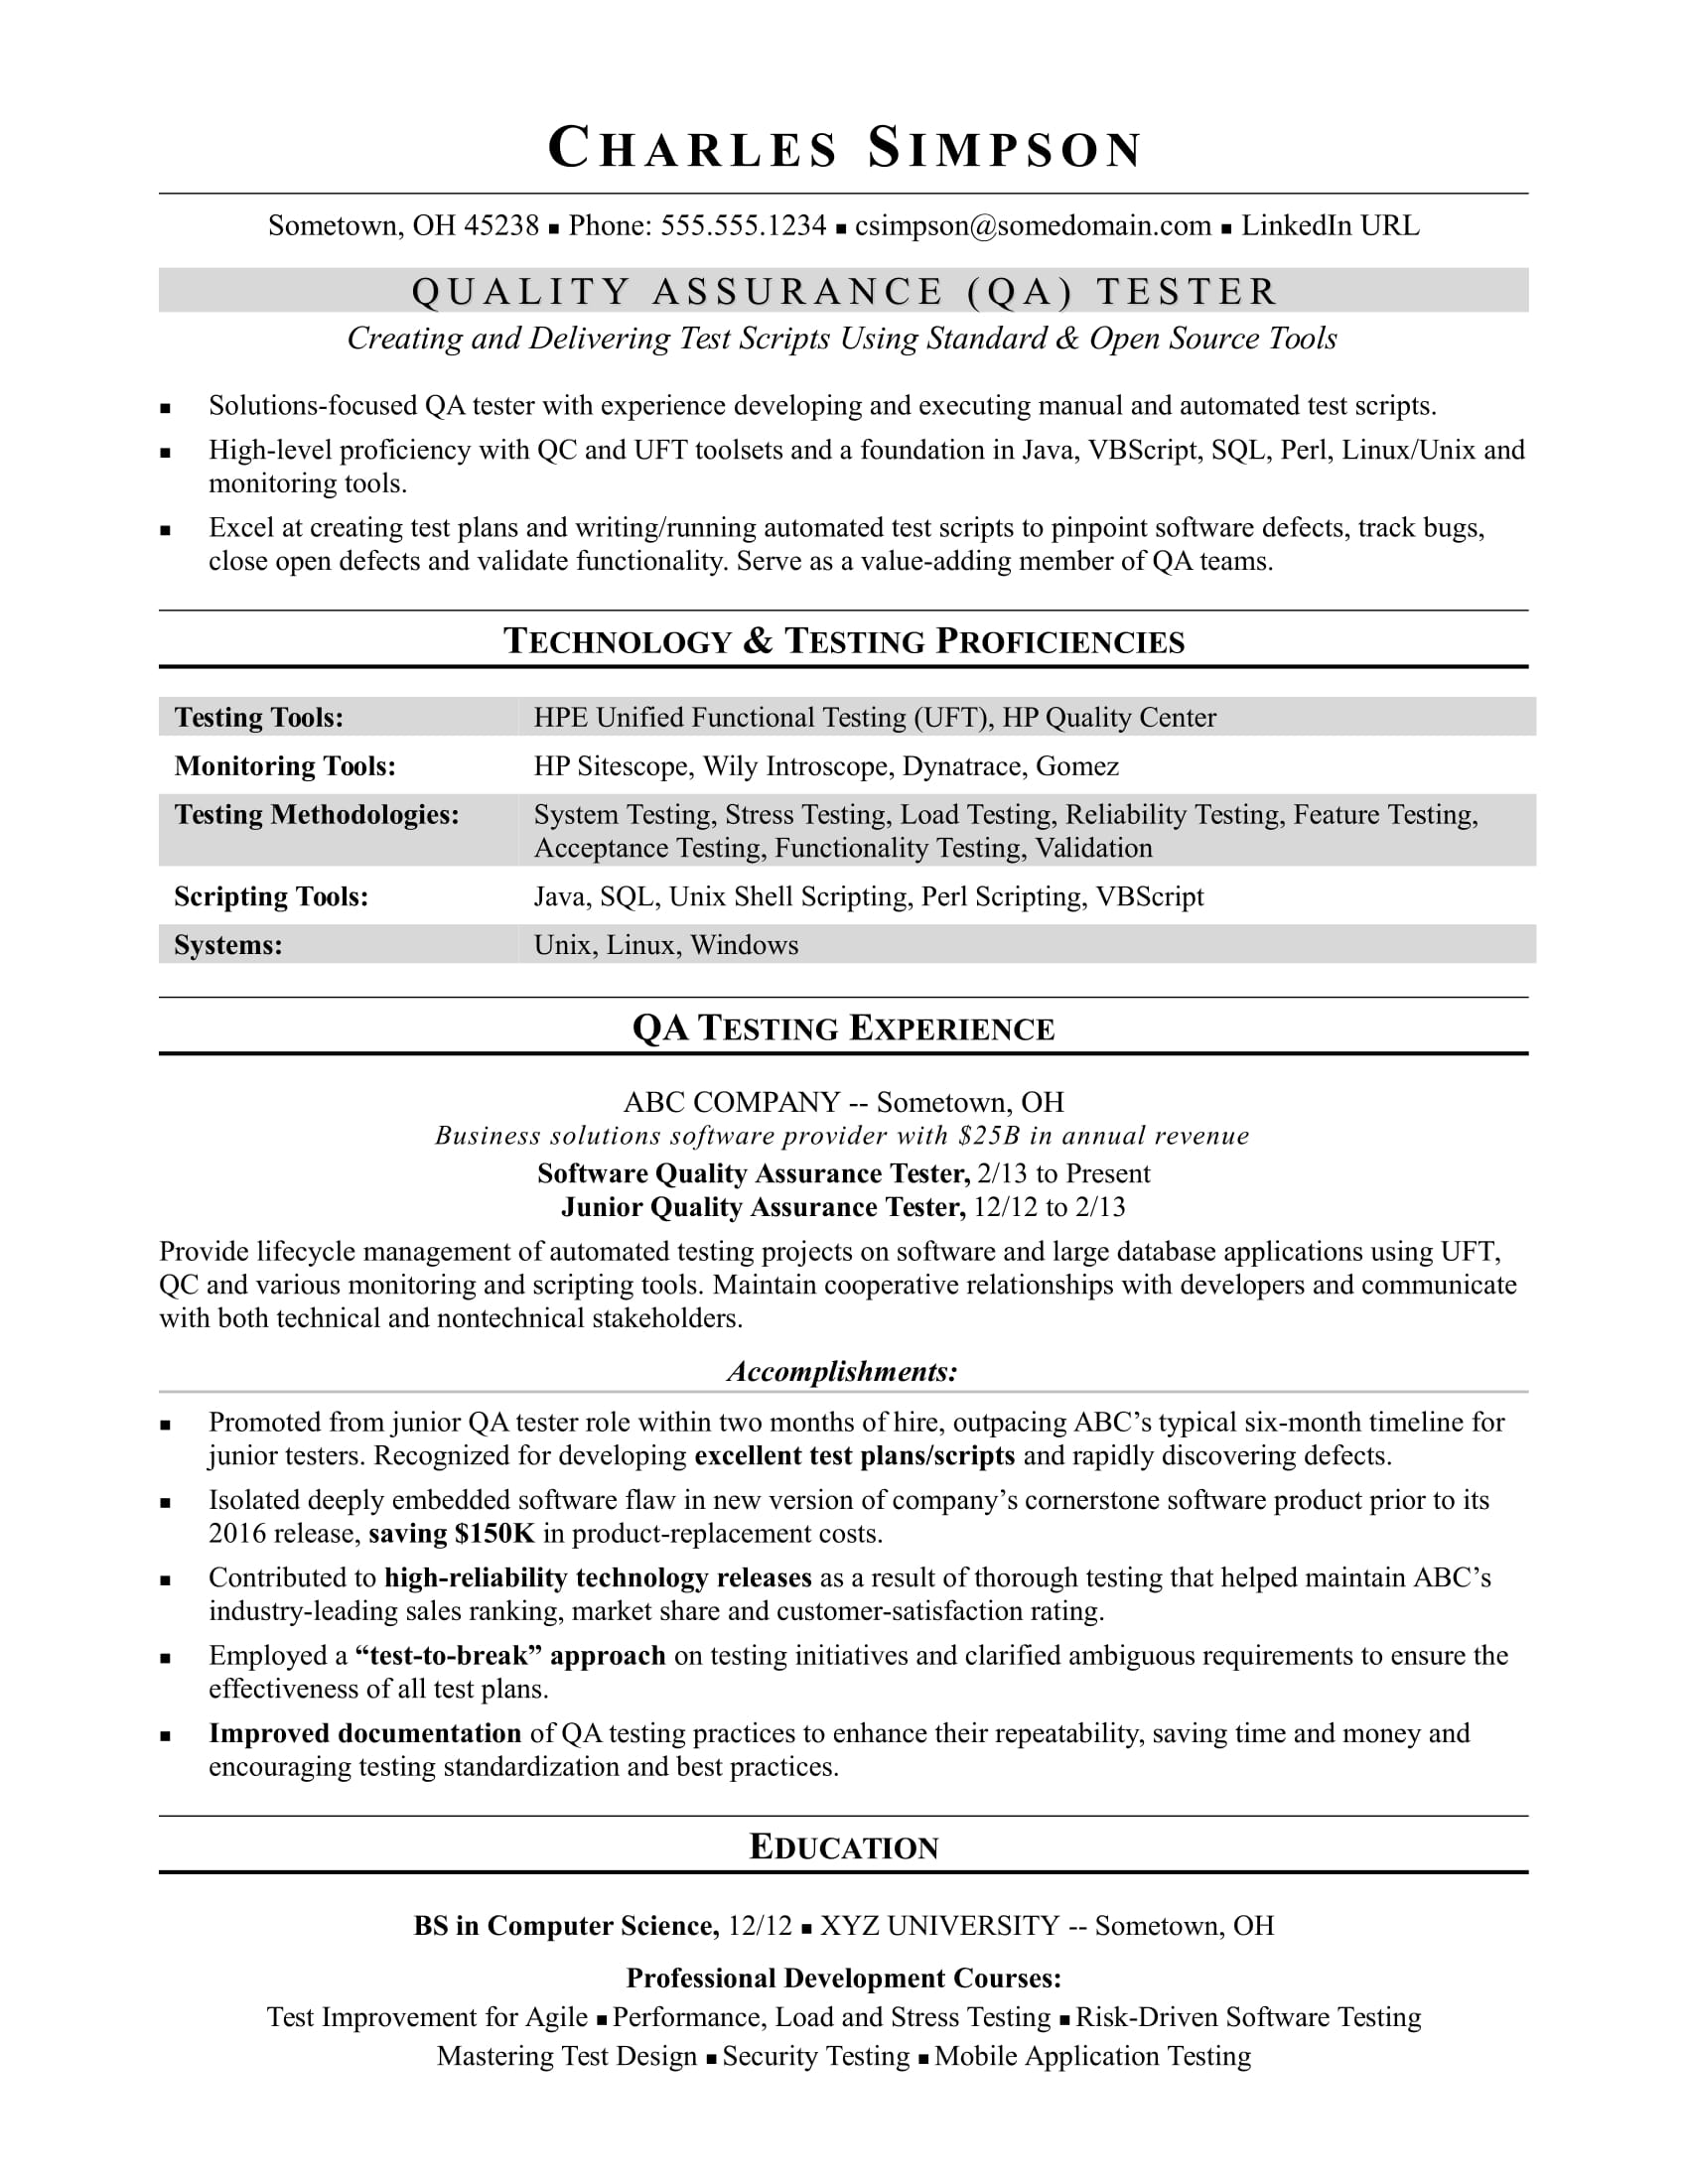 sample resume for a midlevel qa software tester - Sample Resume Software Quality Assurance